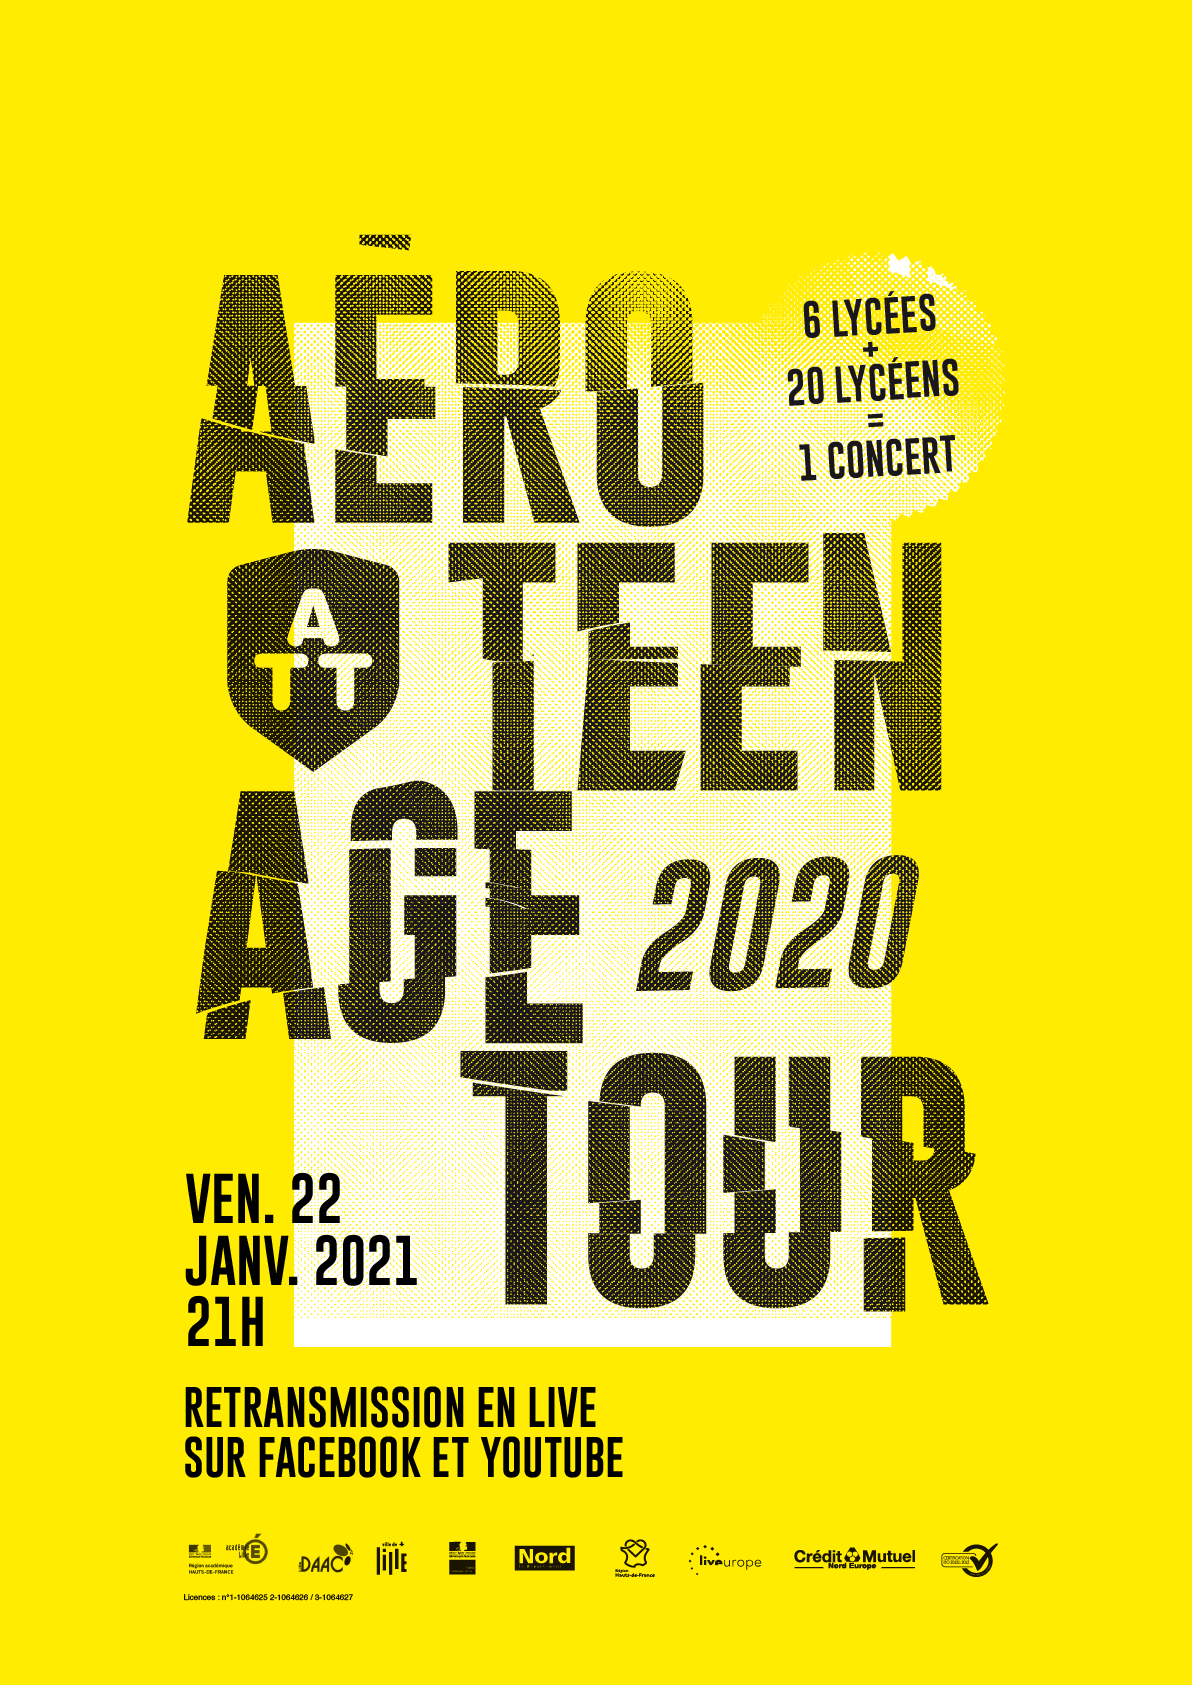 L'Aéro Teenage Tour en direct